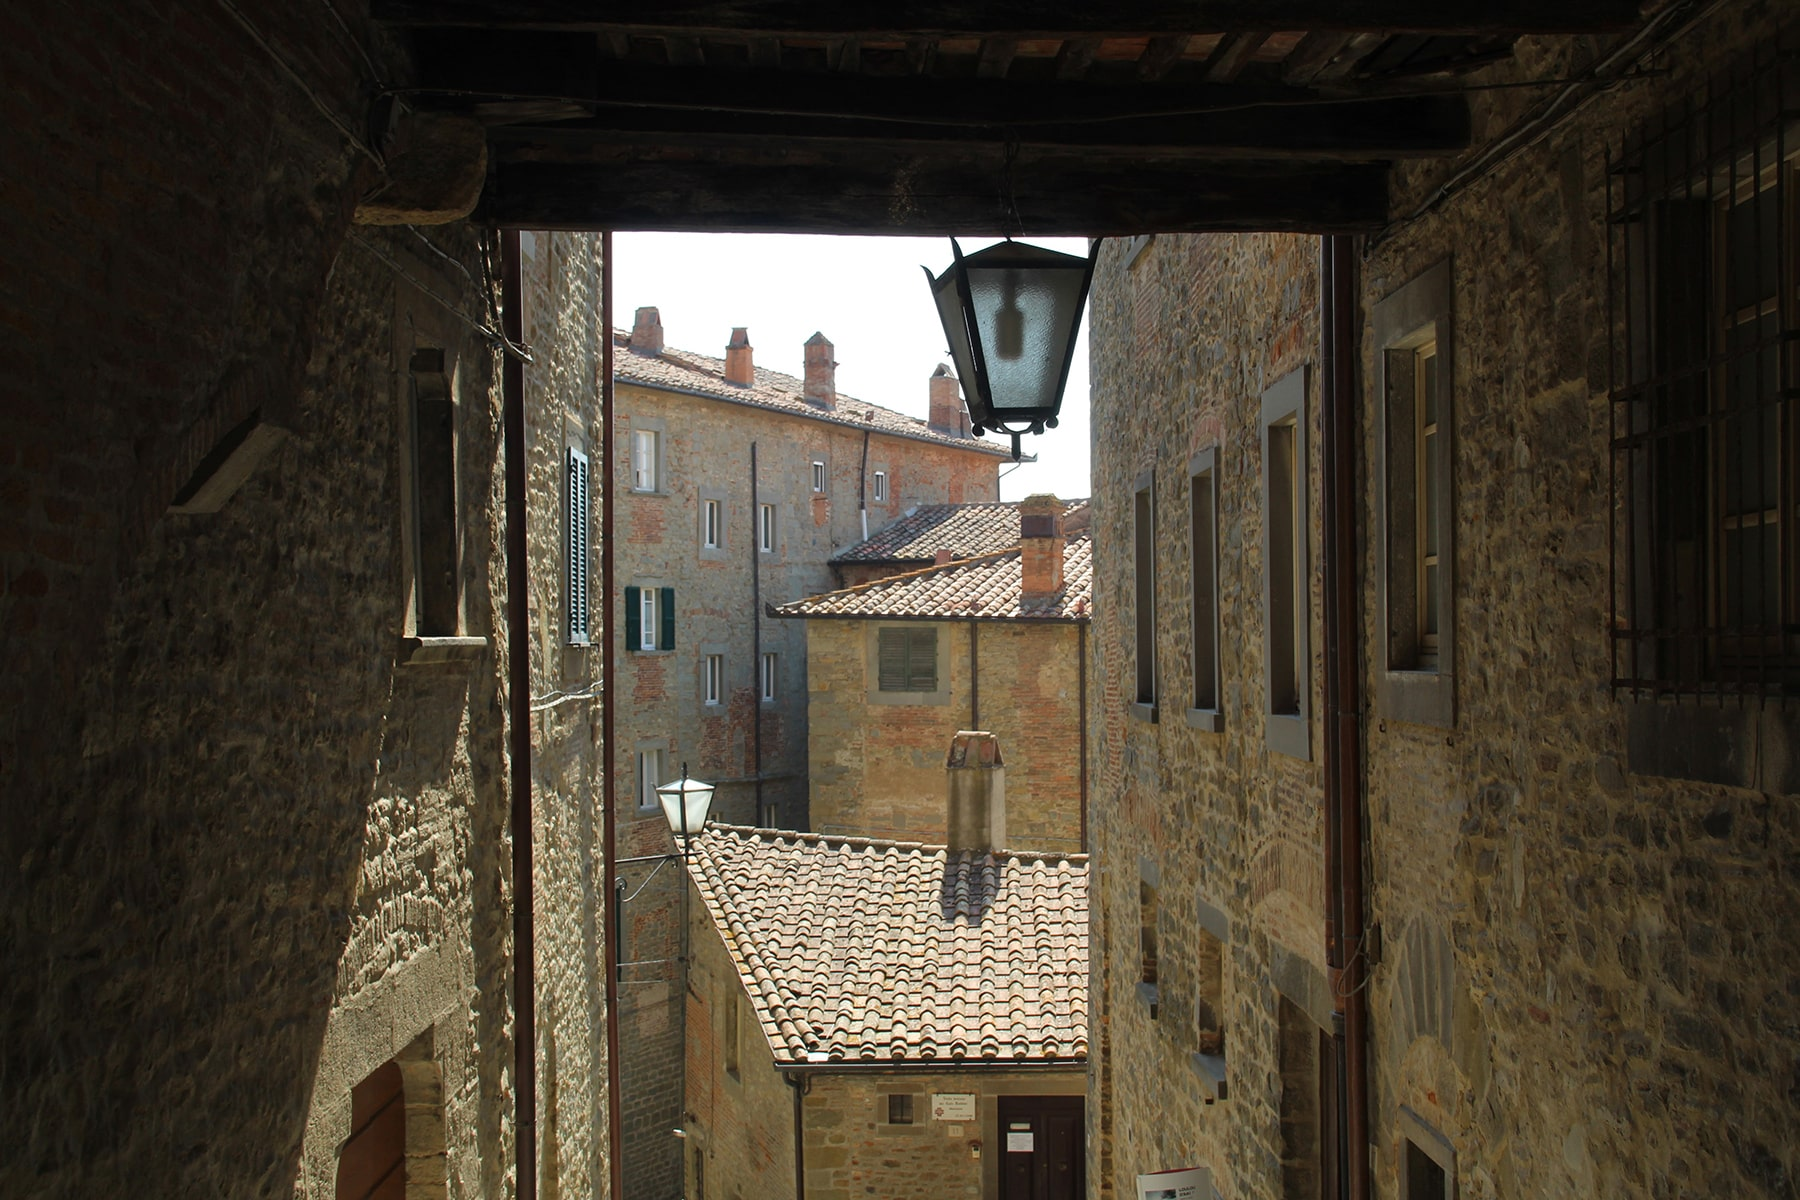 View on rooftops of Perugia from an arch